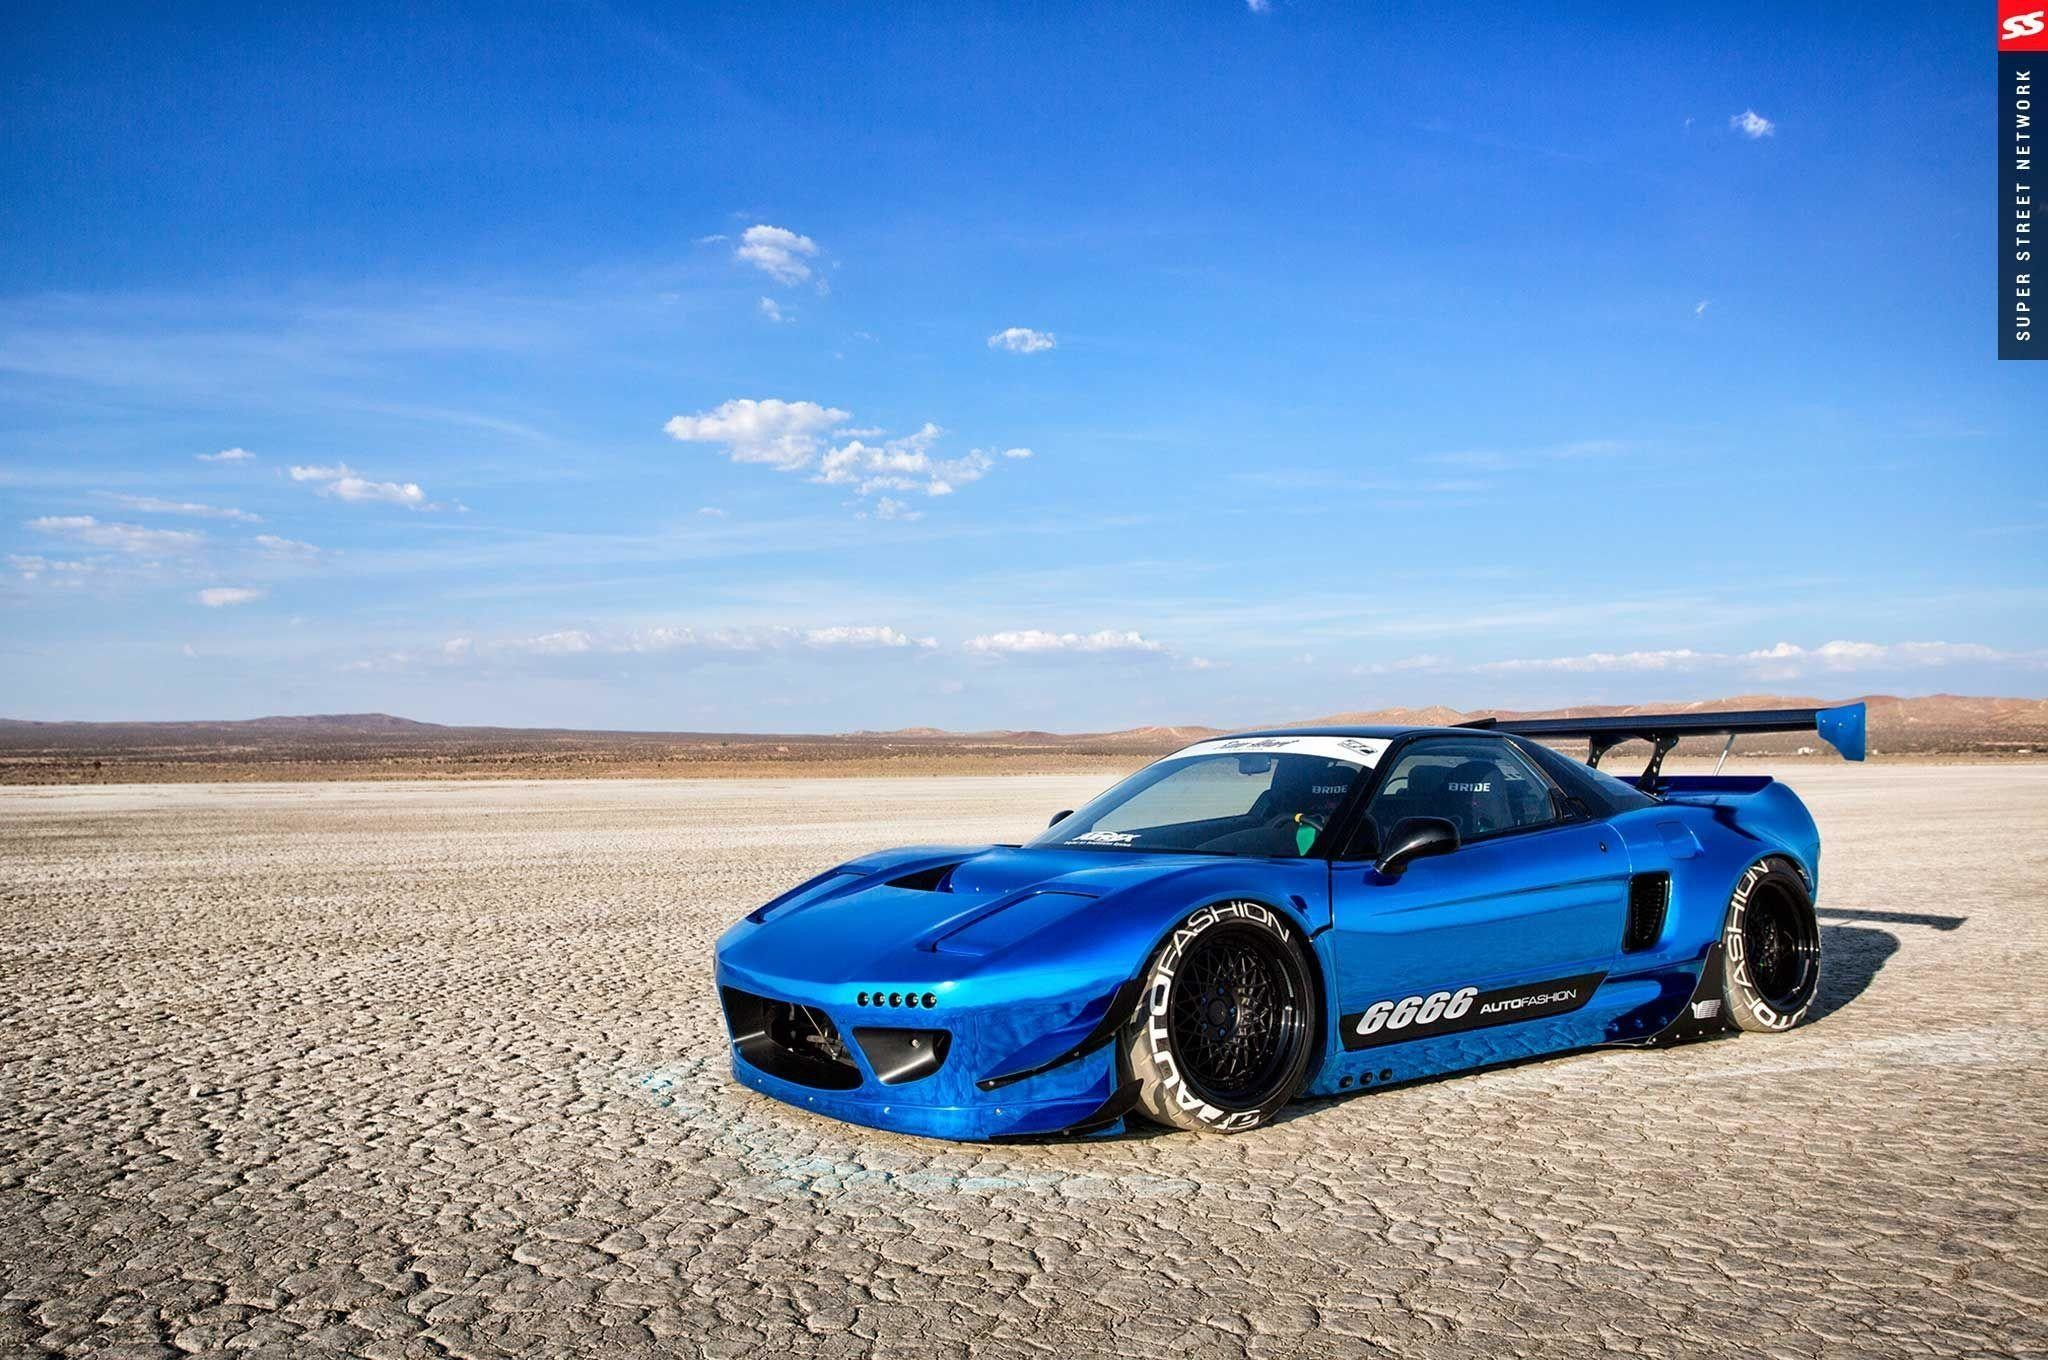 Res: 2048x1360, 1992 acura nsx rocket bunny cars coupe modified blue wallpaper .